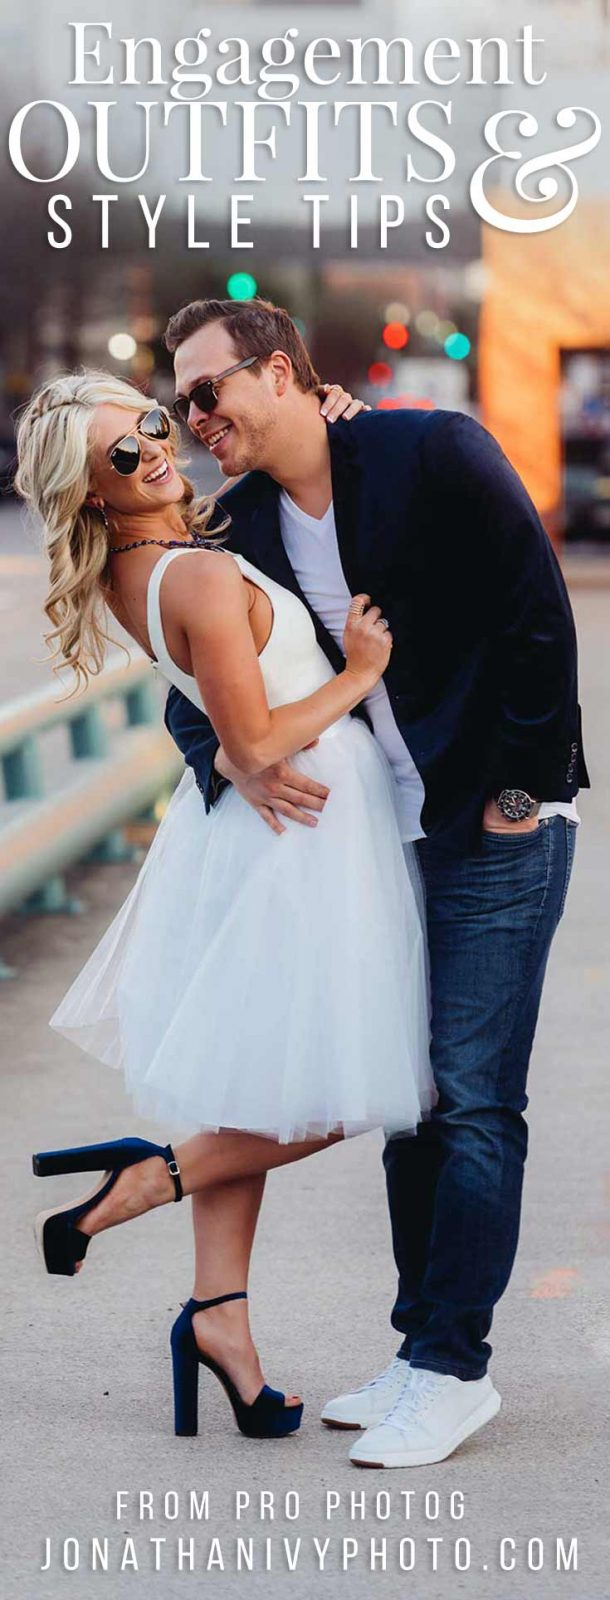 What to Wear for Engagement Photos | Engagement Outfits and Style Tips #engagement